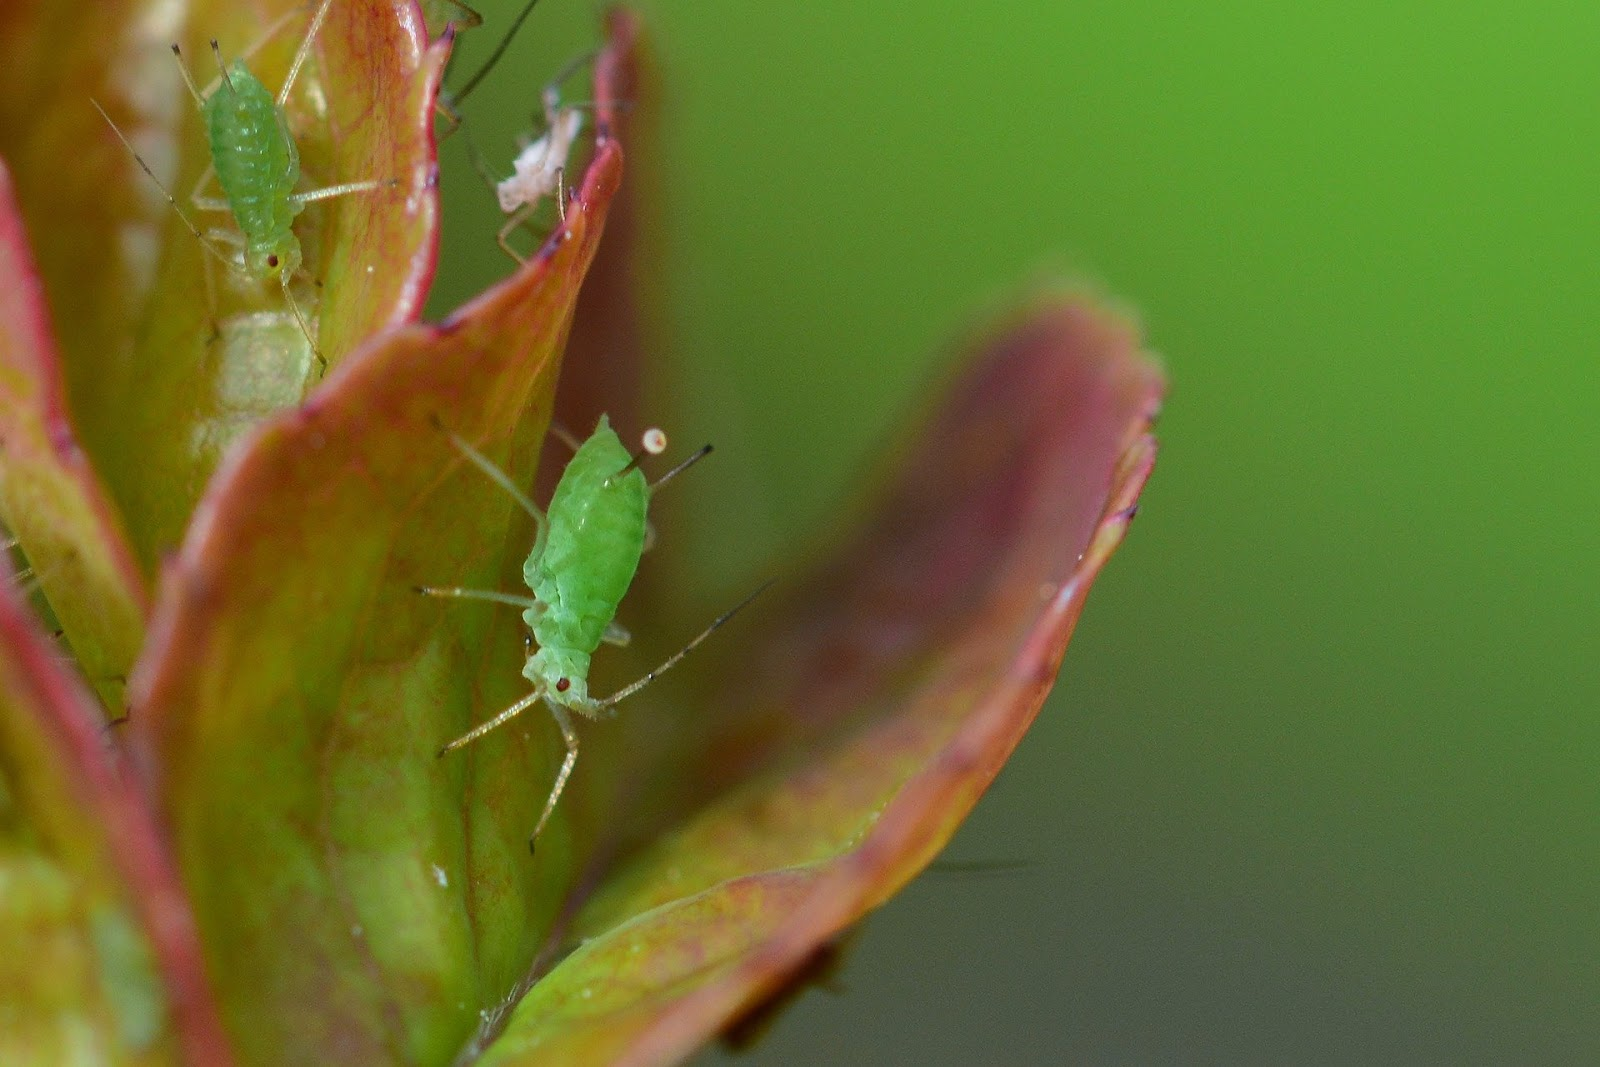 Aphids on leaves